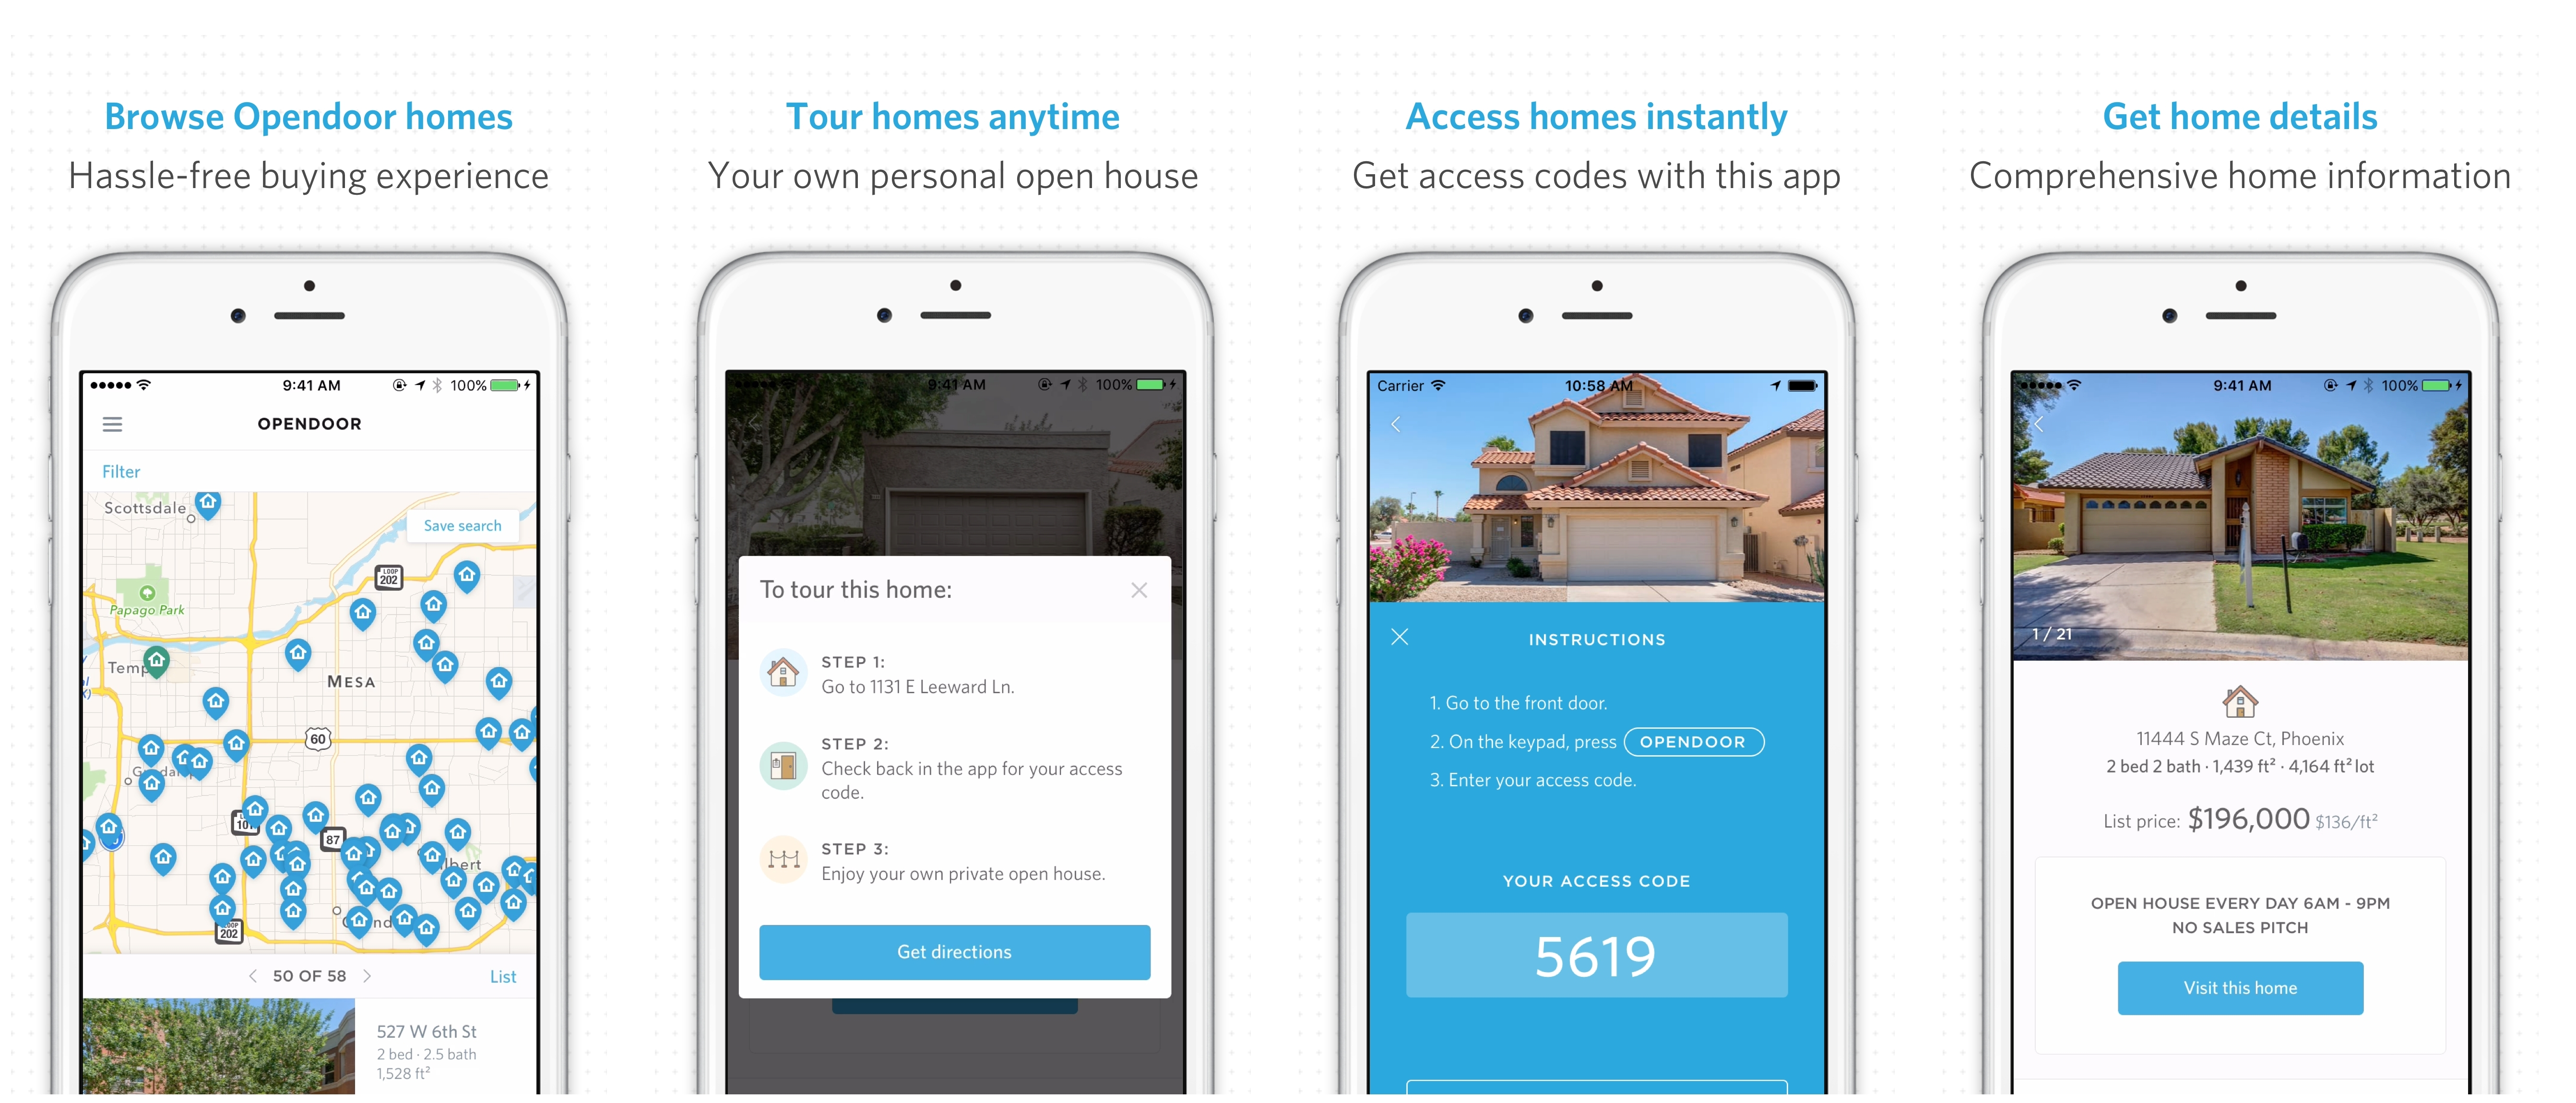 Opendoor Mobile App Gives Phoenix Home Shoppers On-demand